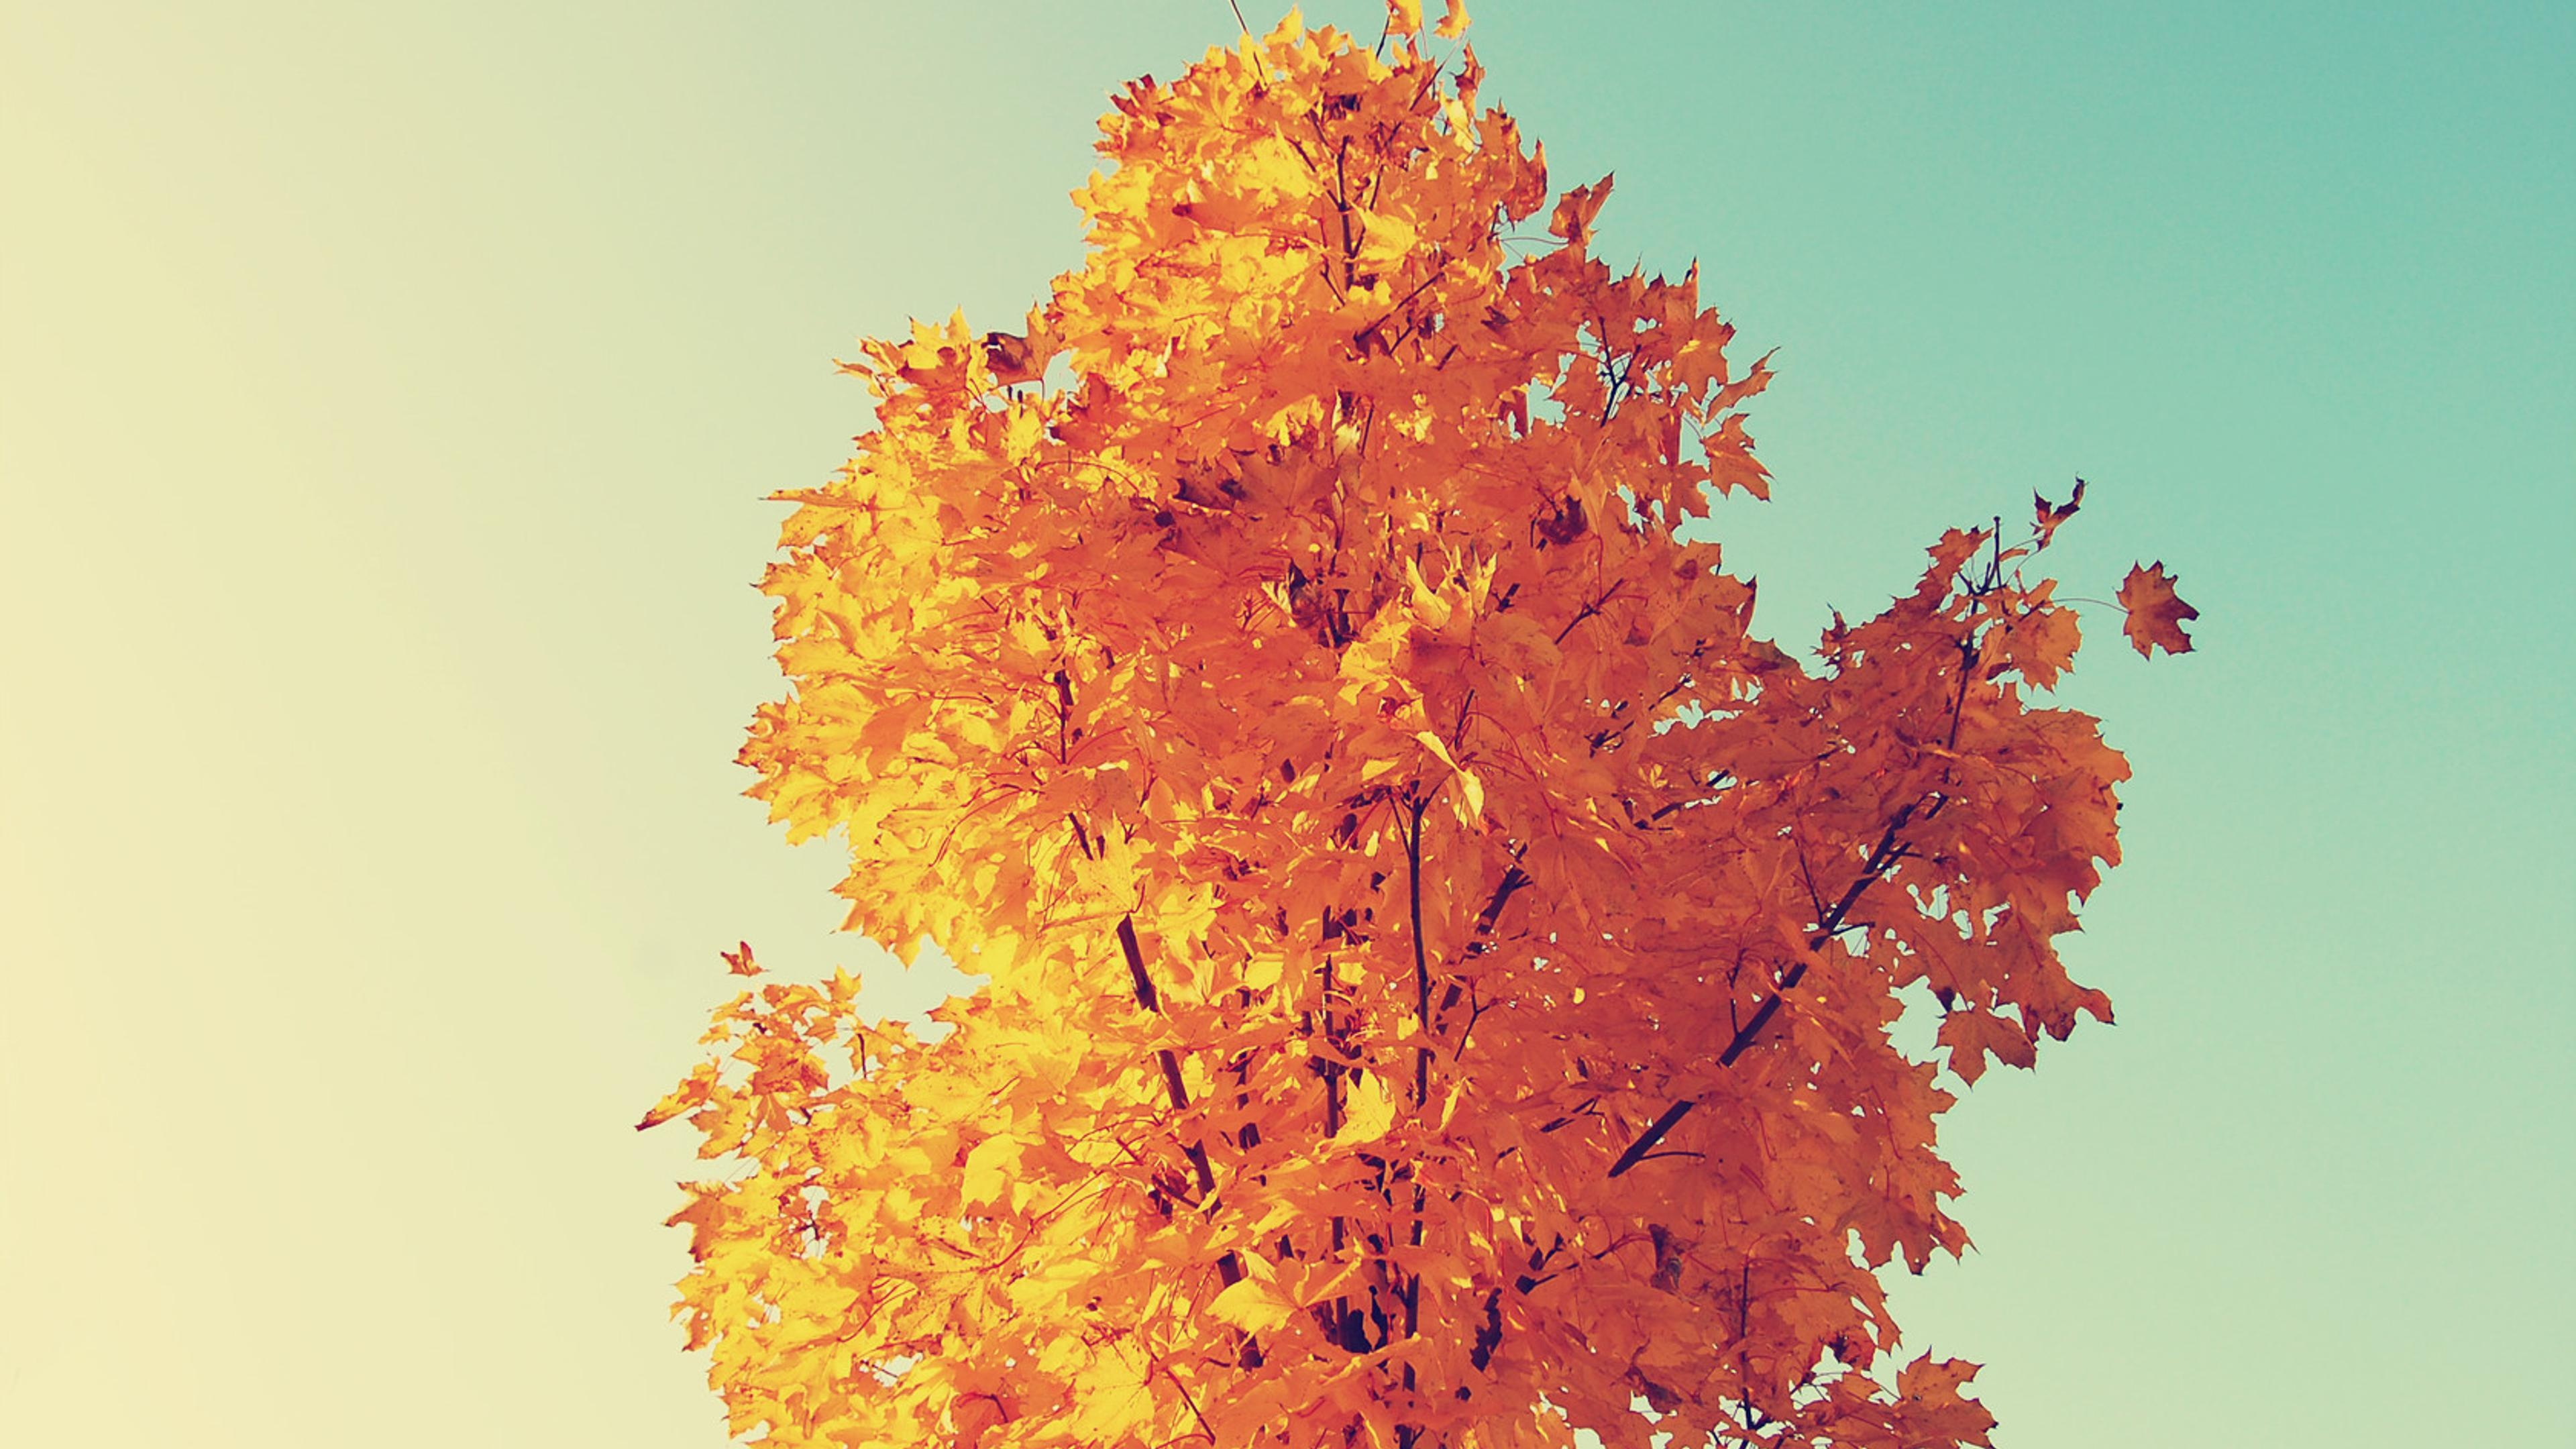 Fall cool background